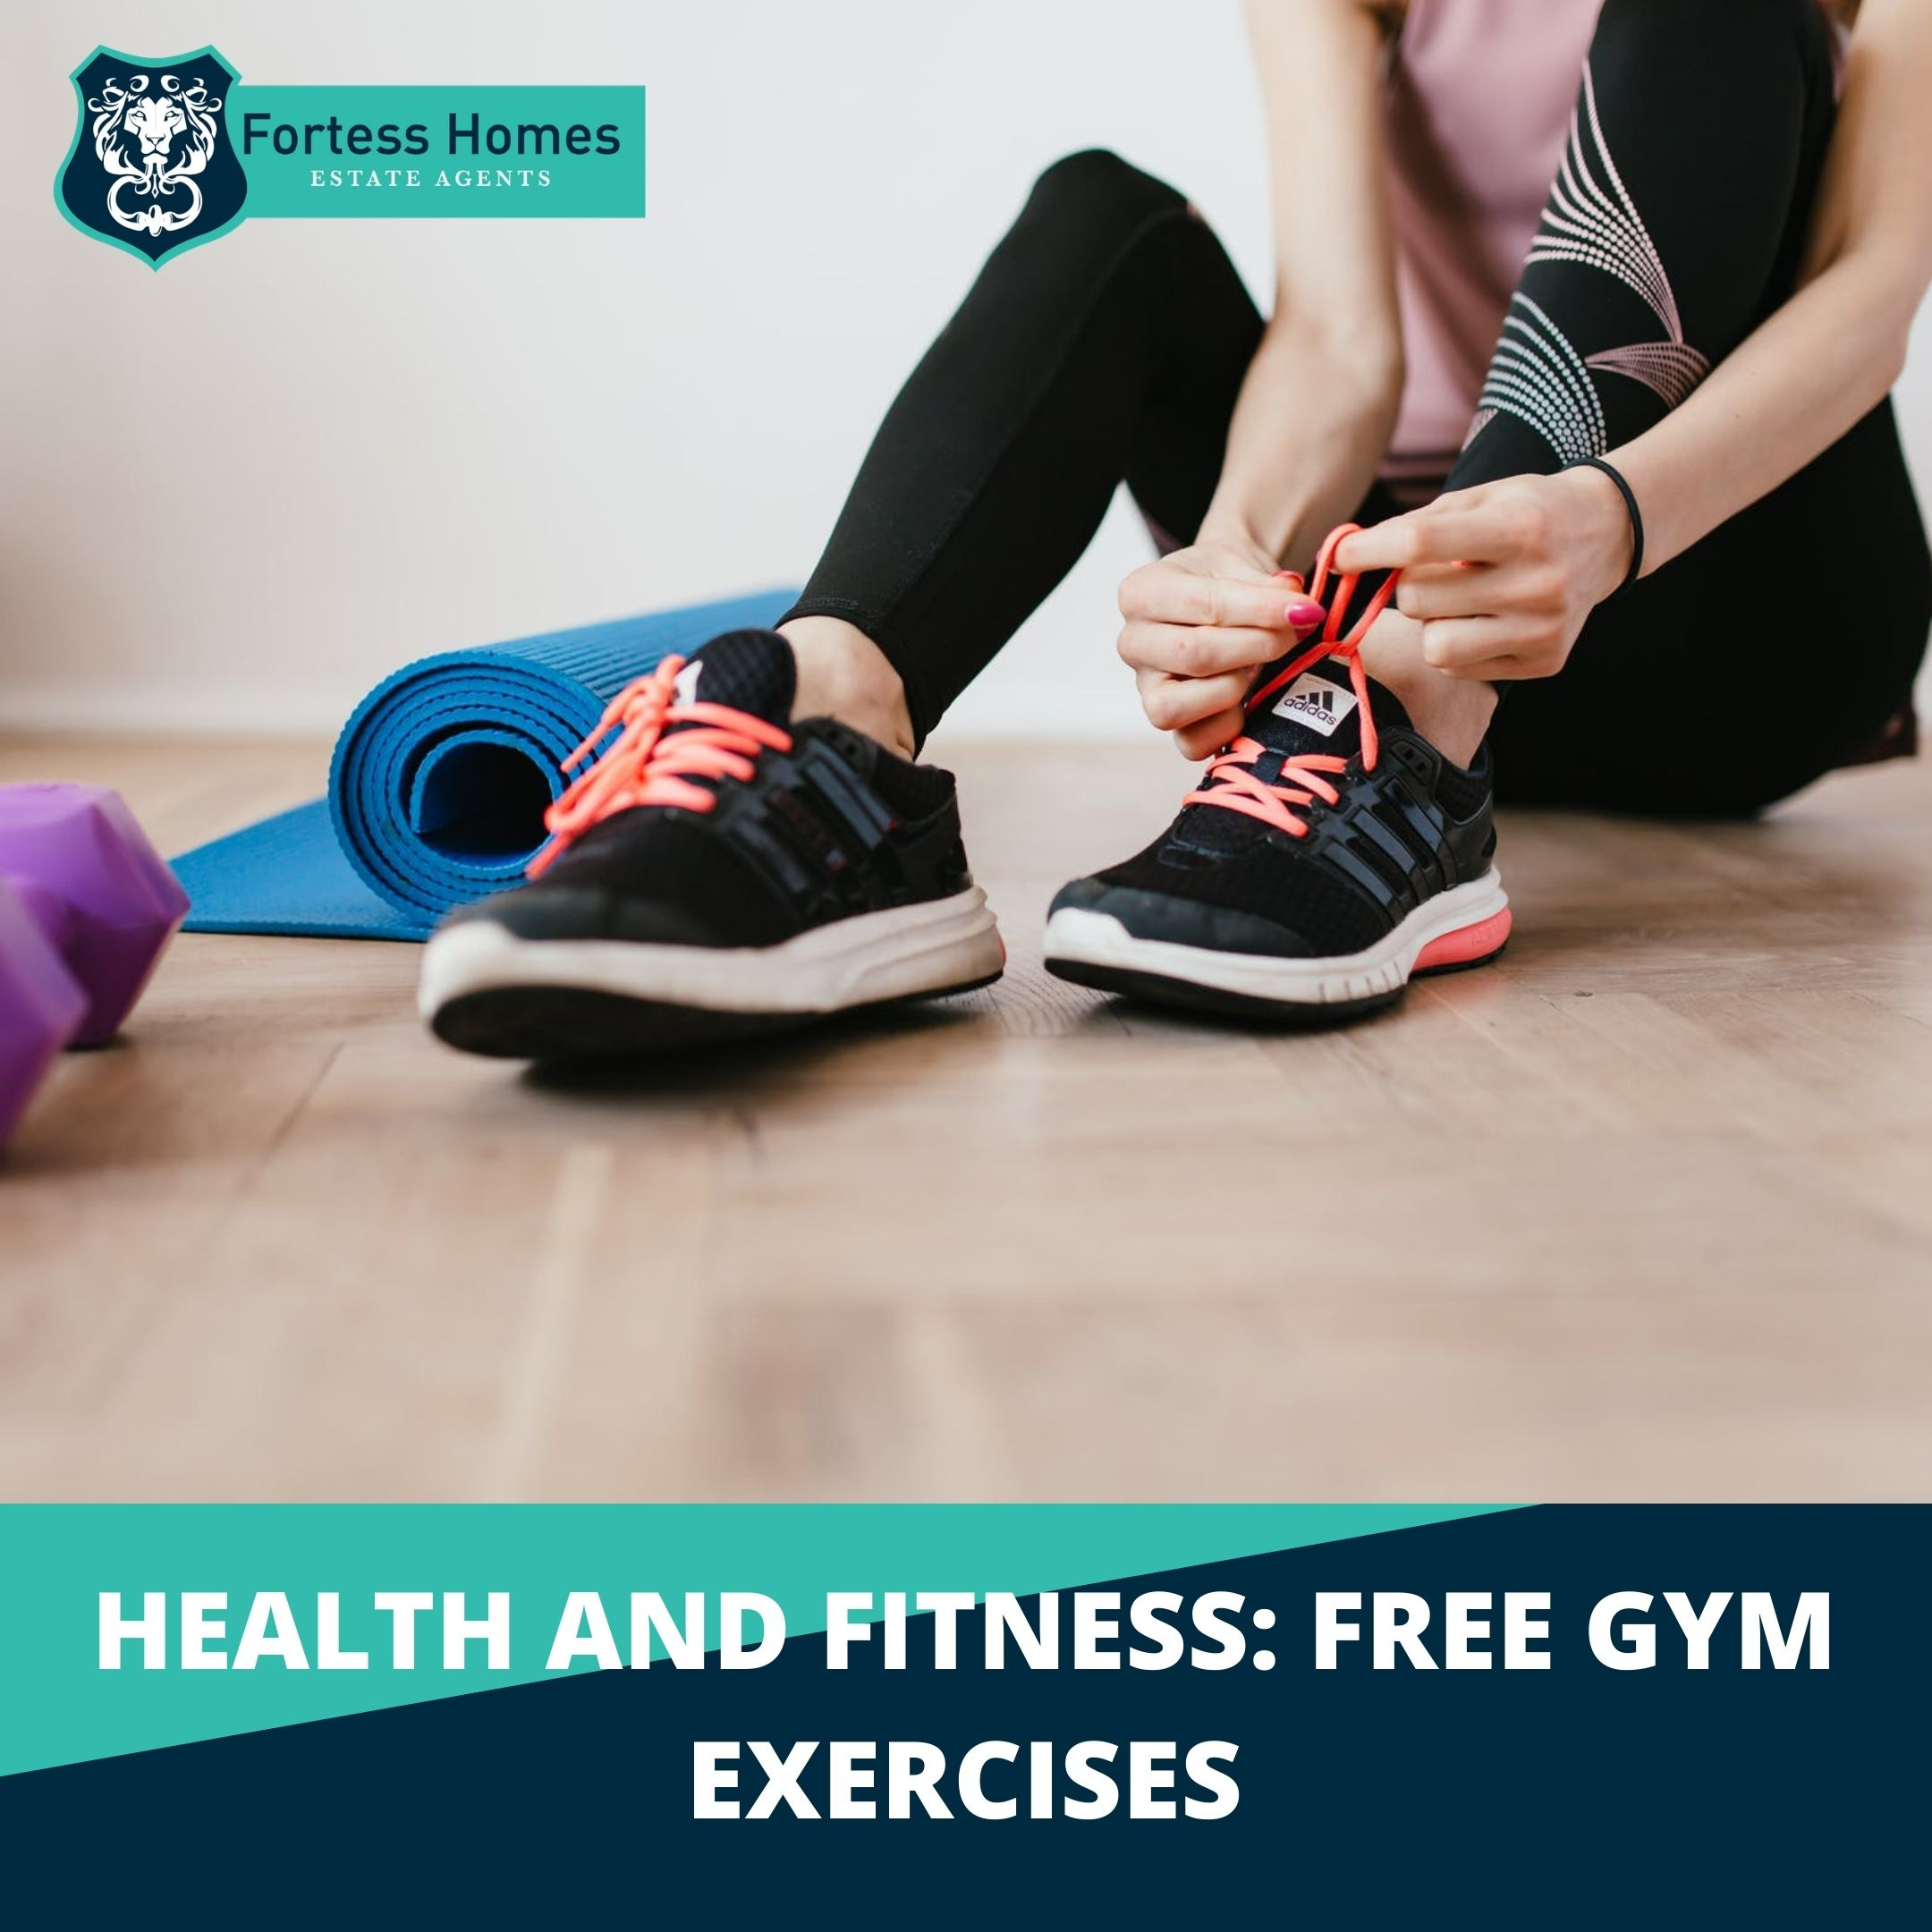 HEALTH AND FITNESS: FREE GYM EXERCISES